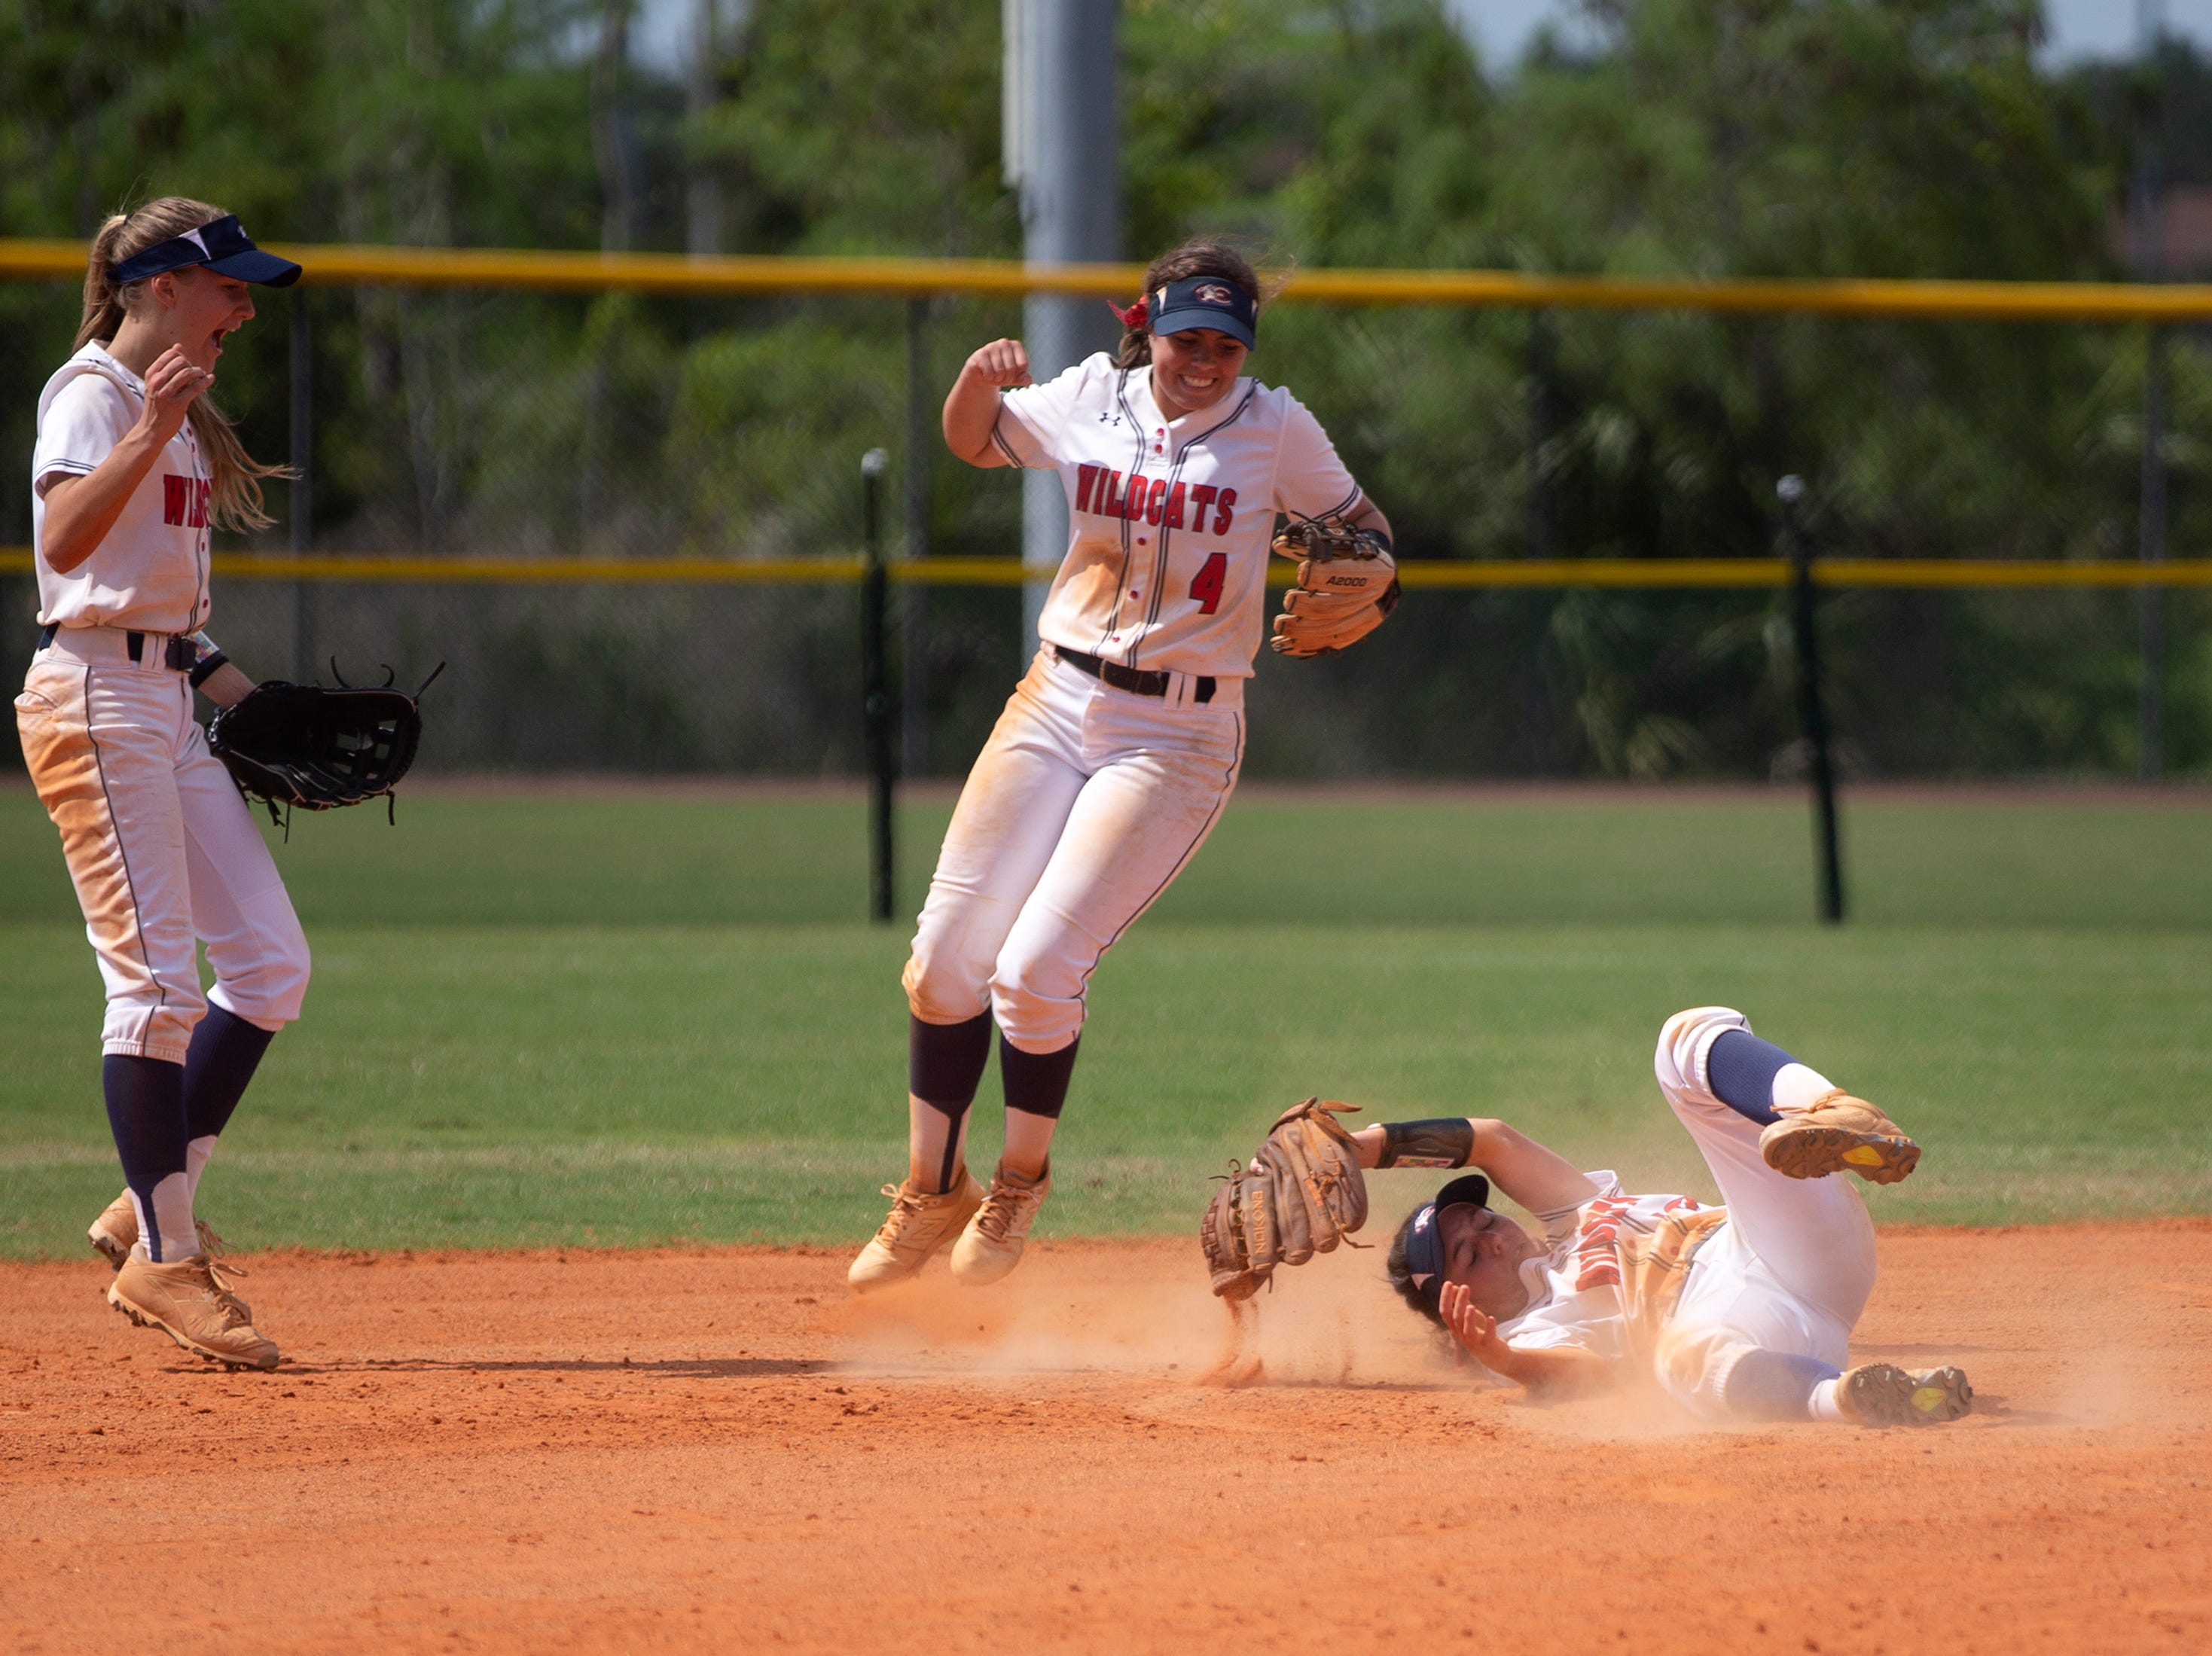 Estero's Grace Horty, left, and Anna Raybuck, celebrate after teammate Chelsea Dumas makes an infield catch for an out against Dural Academy during the Longshore Memorial softball tournament, Saturday, April 13, 2019, at North Collier Regional Park in North Naples.